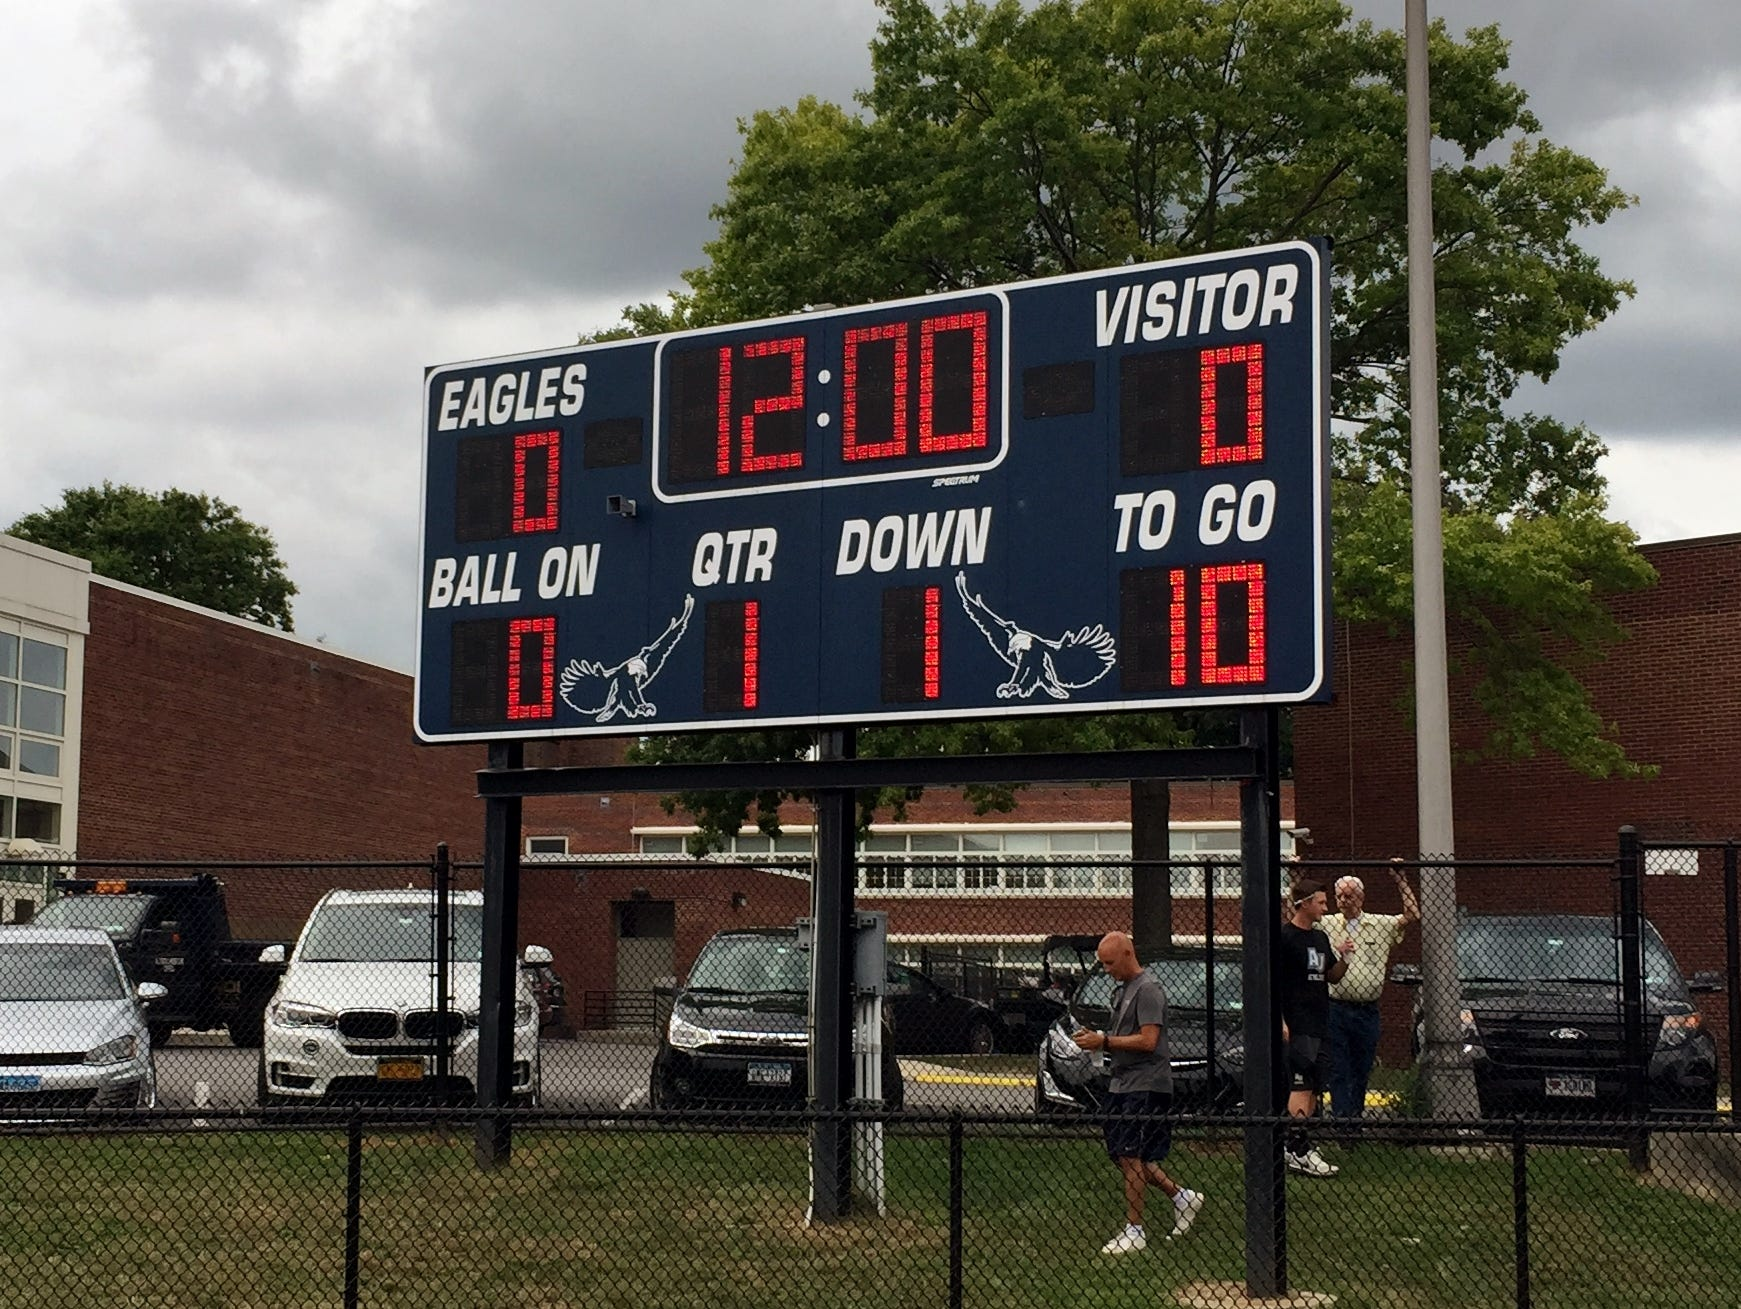 Somers opened the season with an 8-1 win at Eastchester.